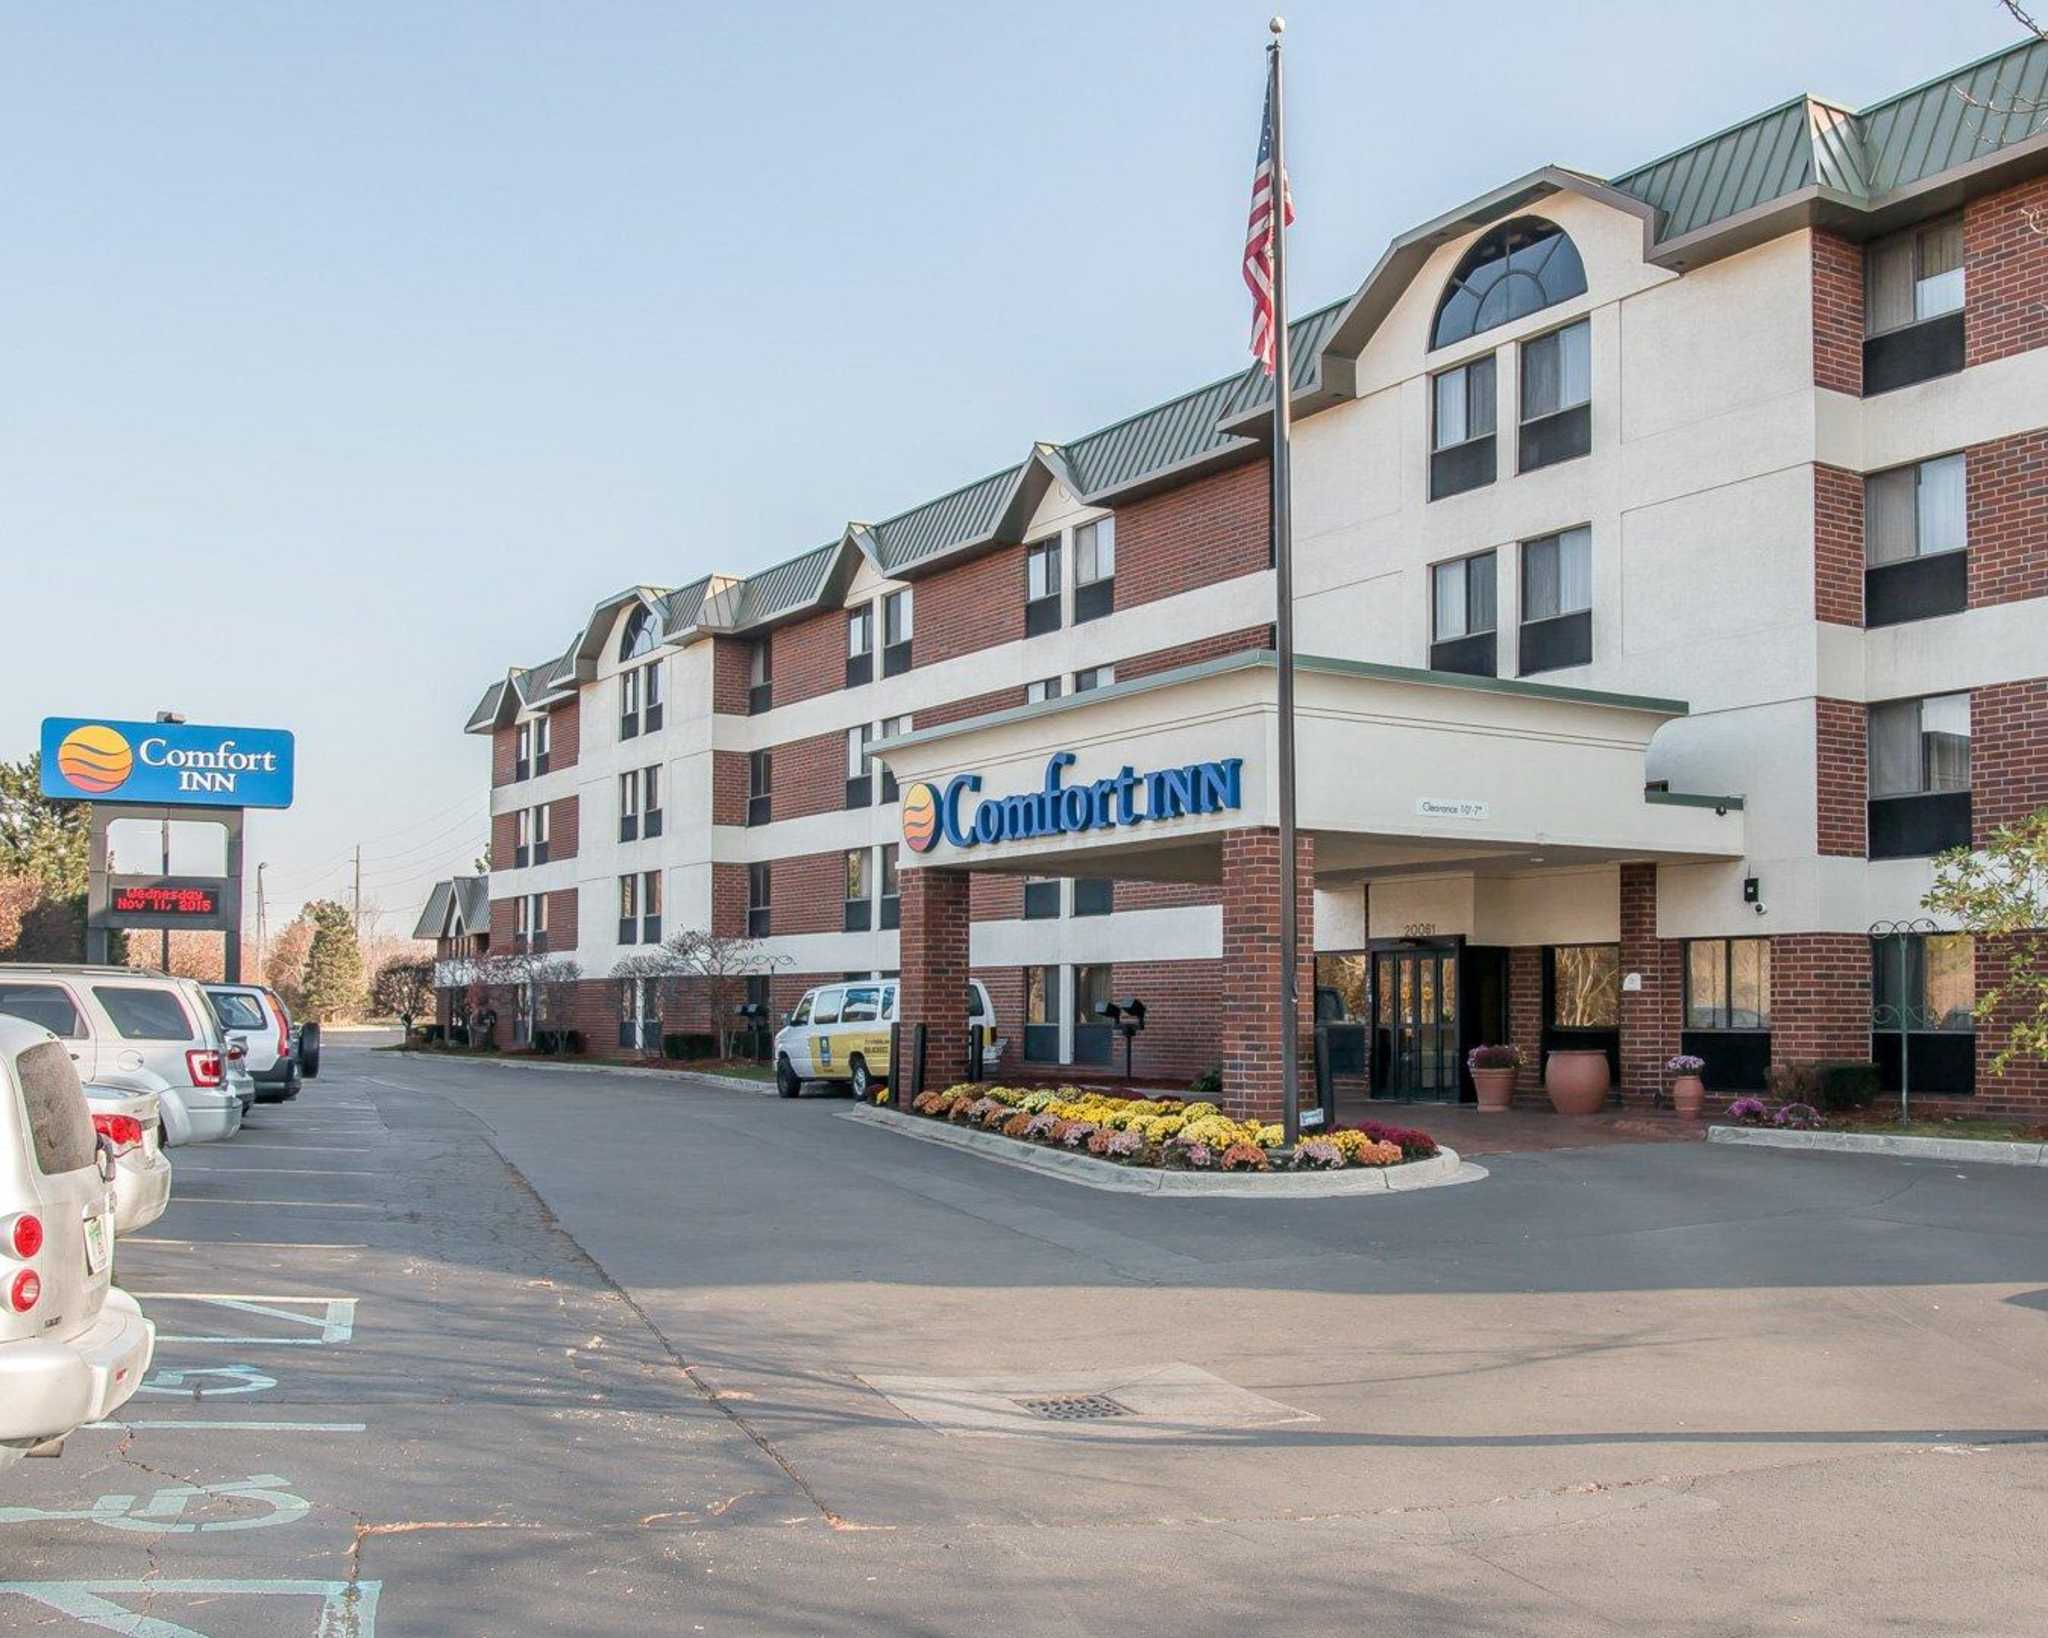 Comfort inn near greenfield village dearborn michigan mi for Big fish dearborn mi